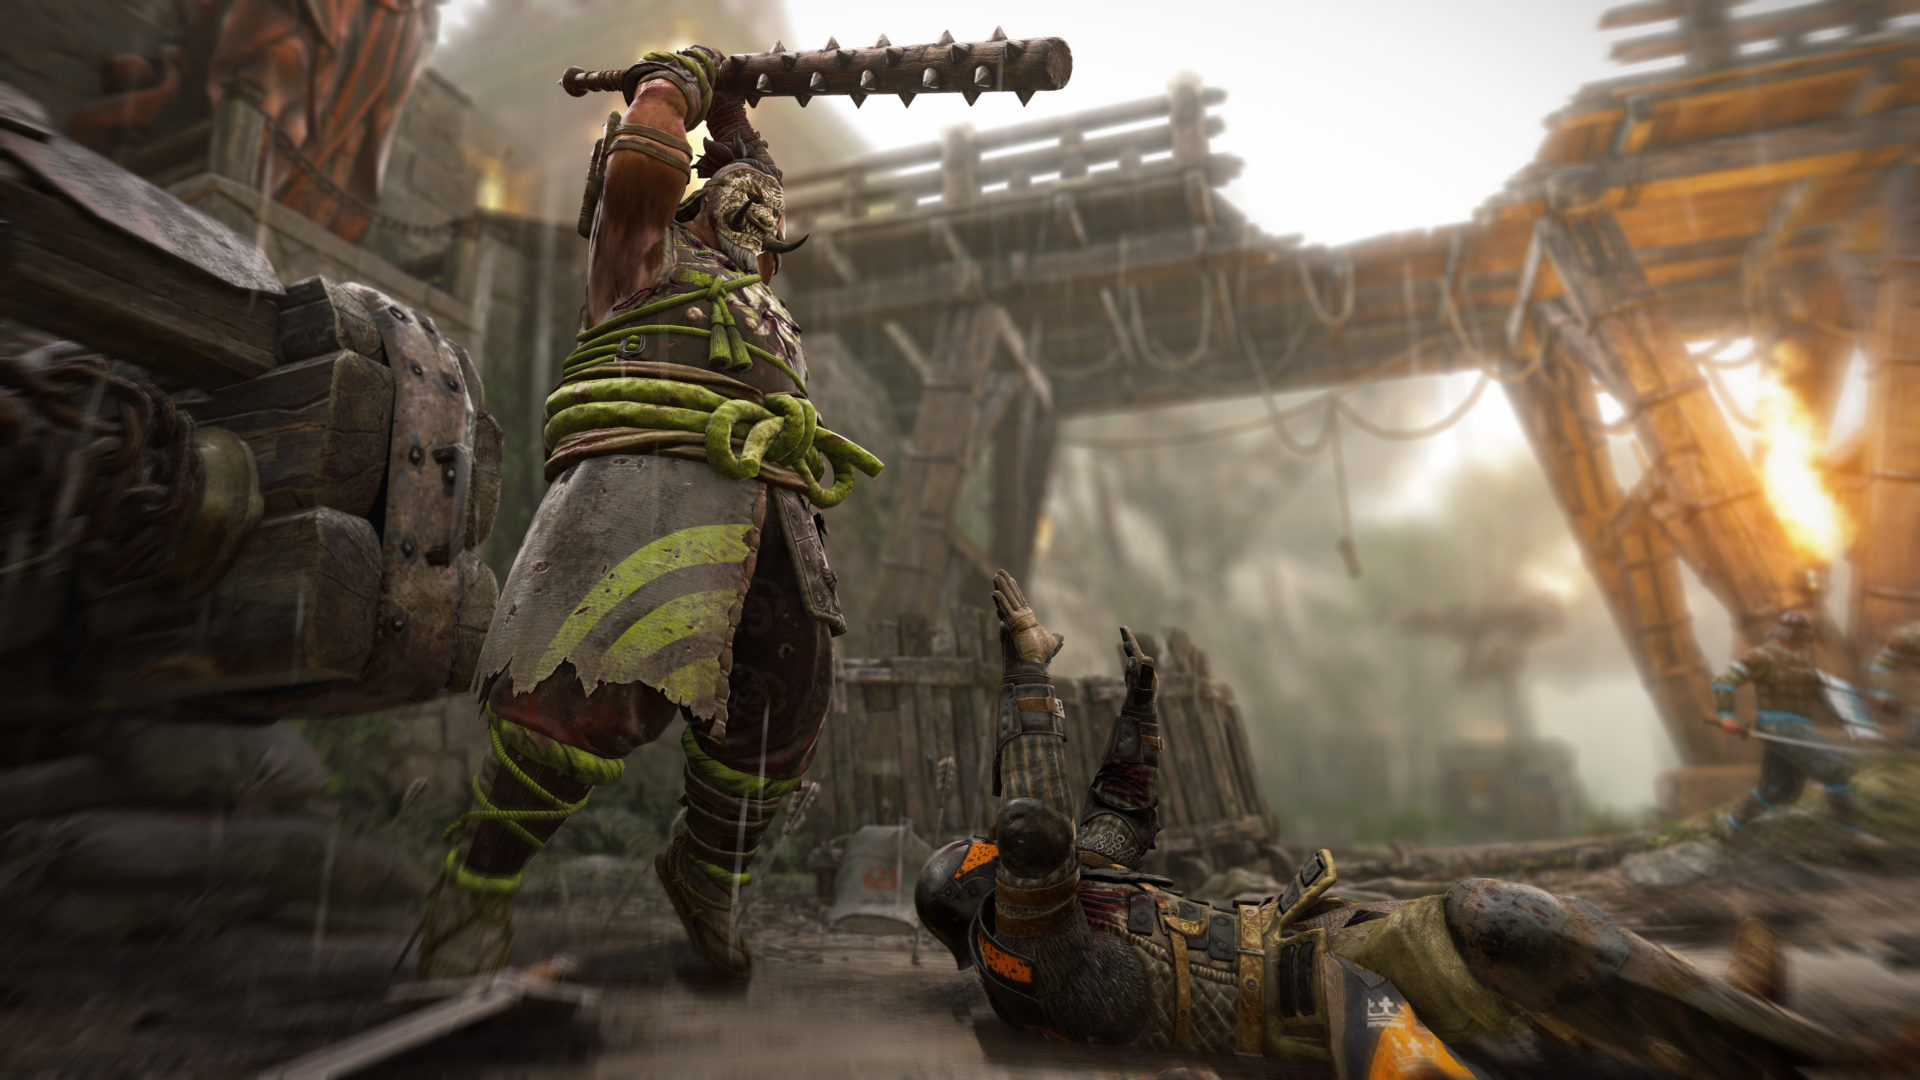 The Shugoki class in For Honor can strike as fast as a snake with his light attack and push back enemies with his heavy attack.